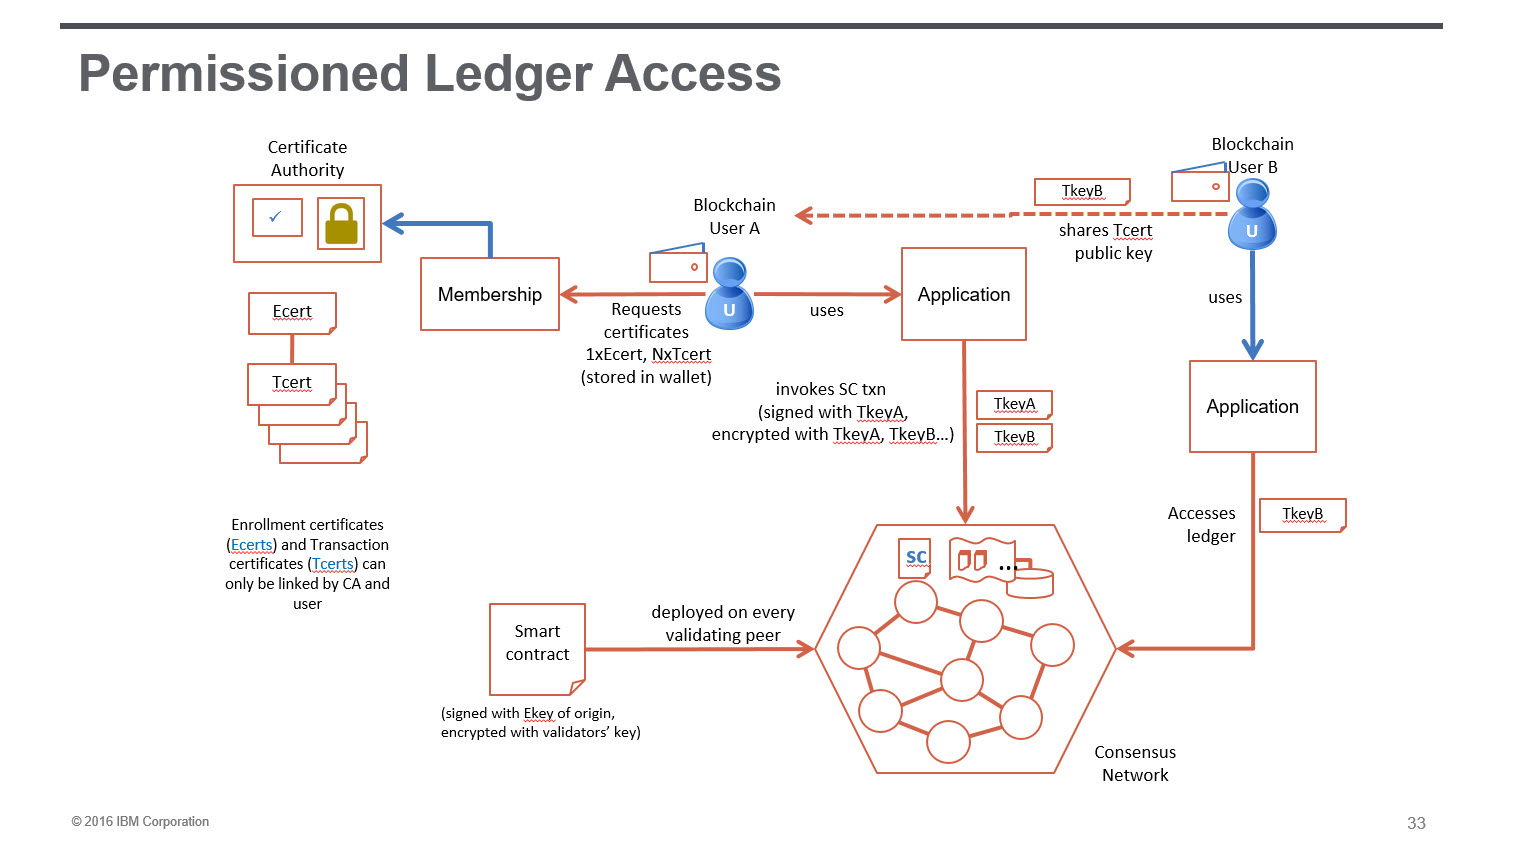 Hyperledger Blockchain permissioned ledger access